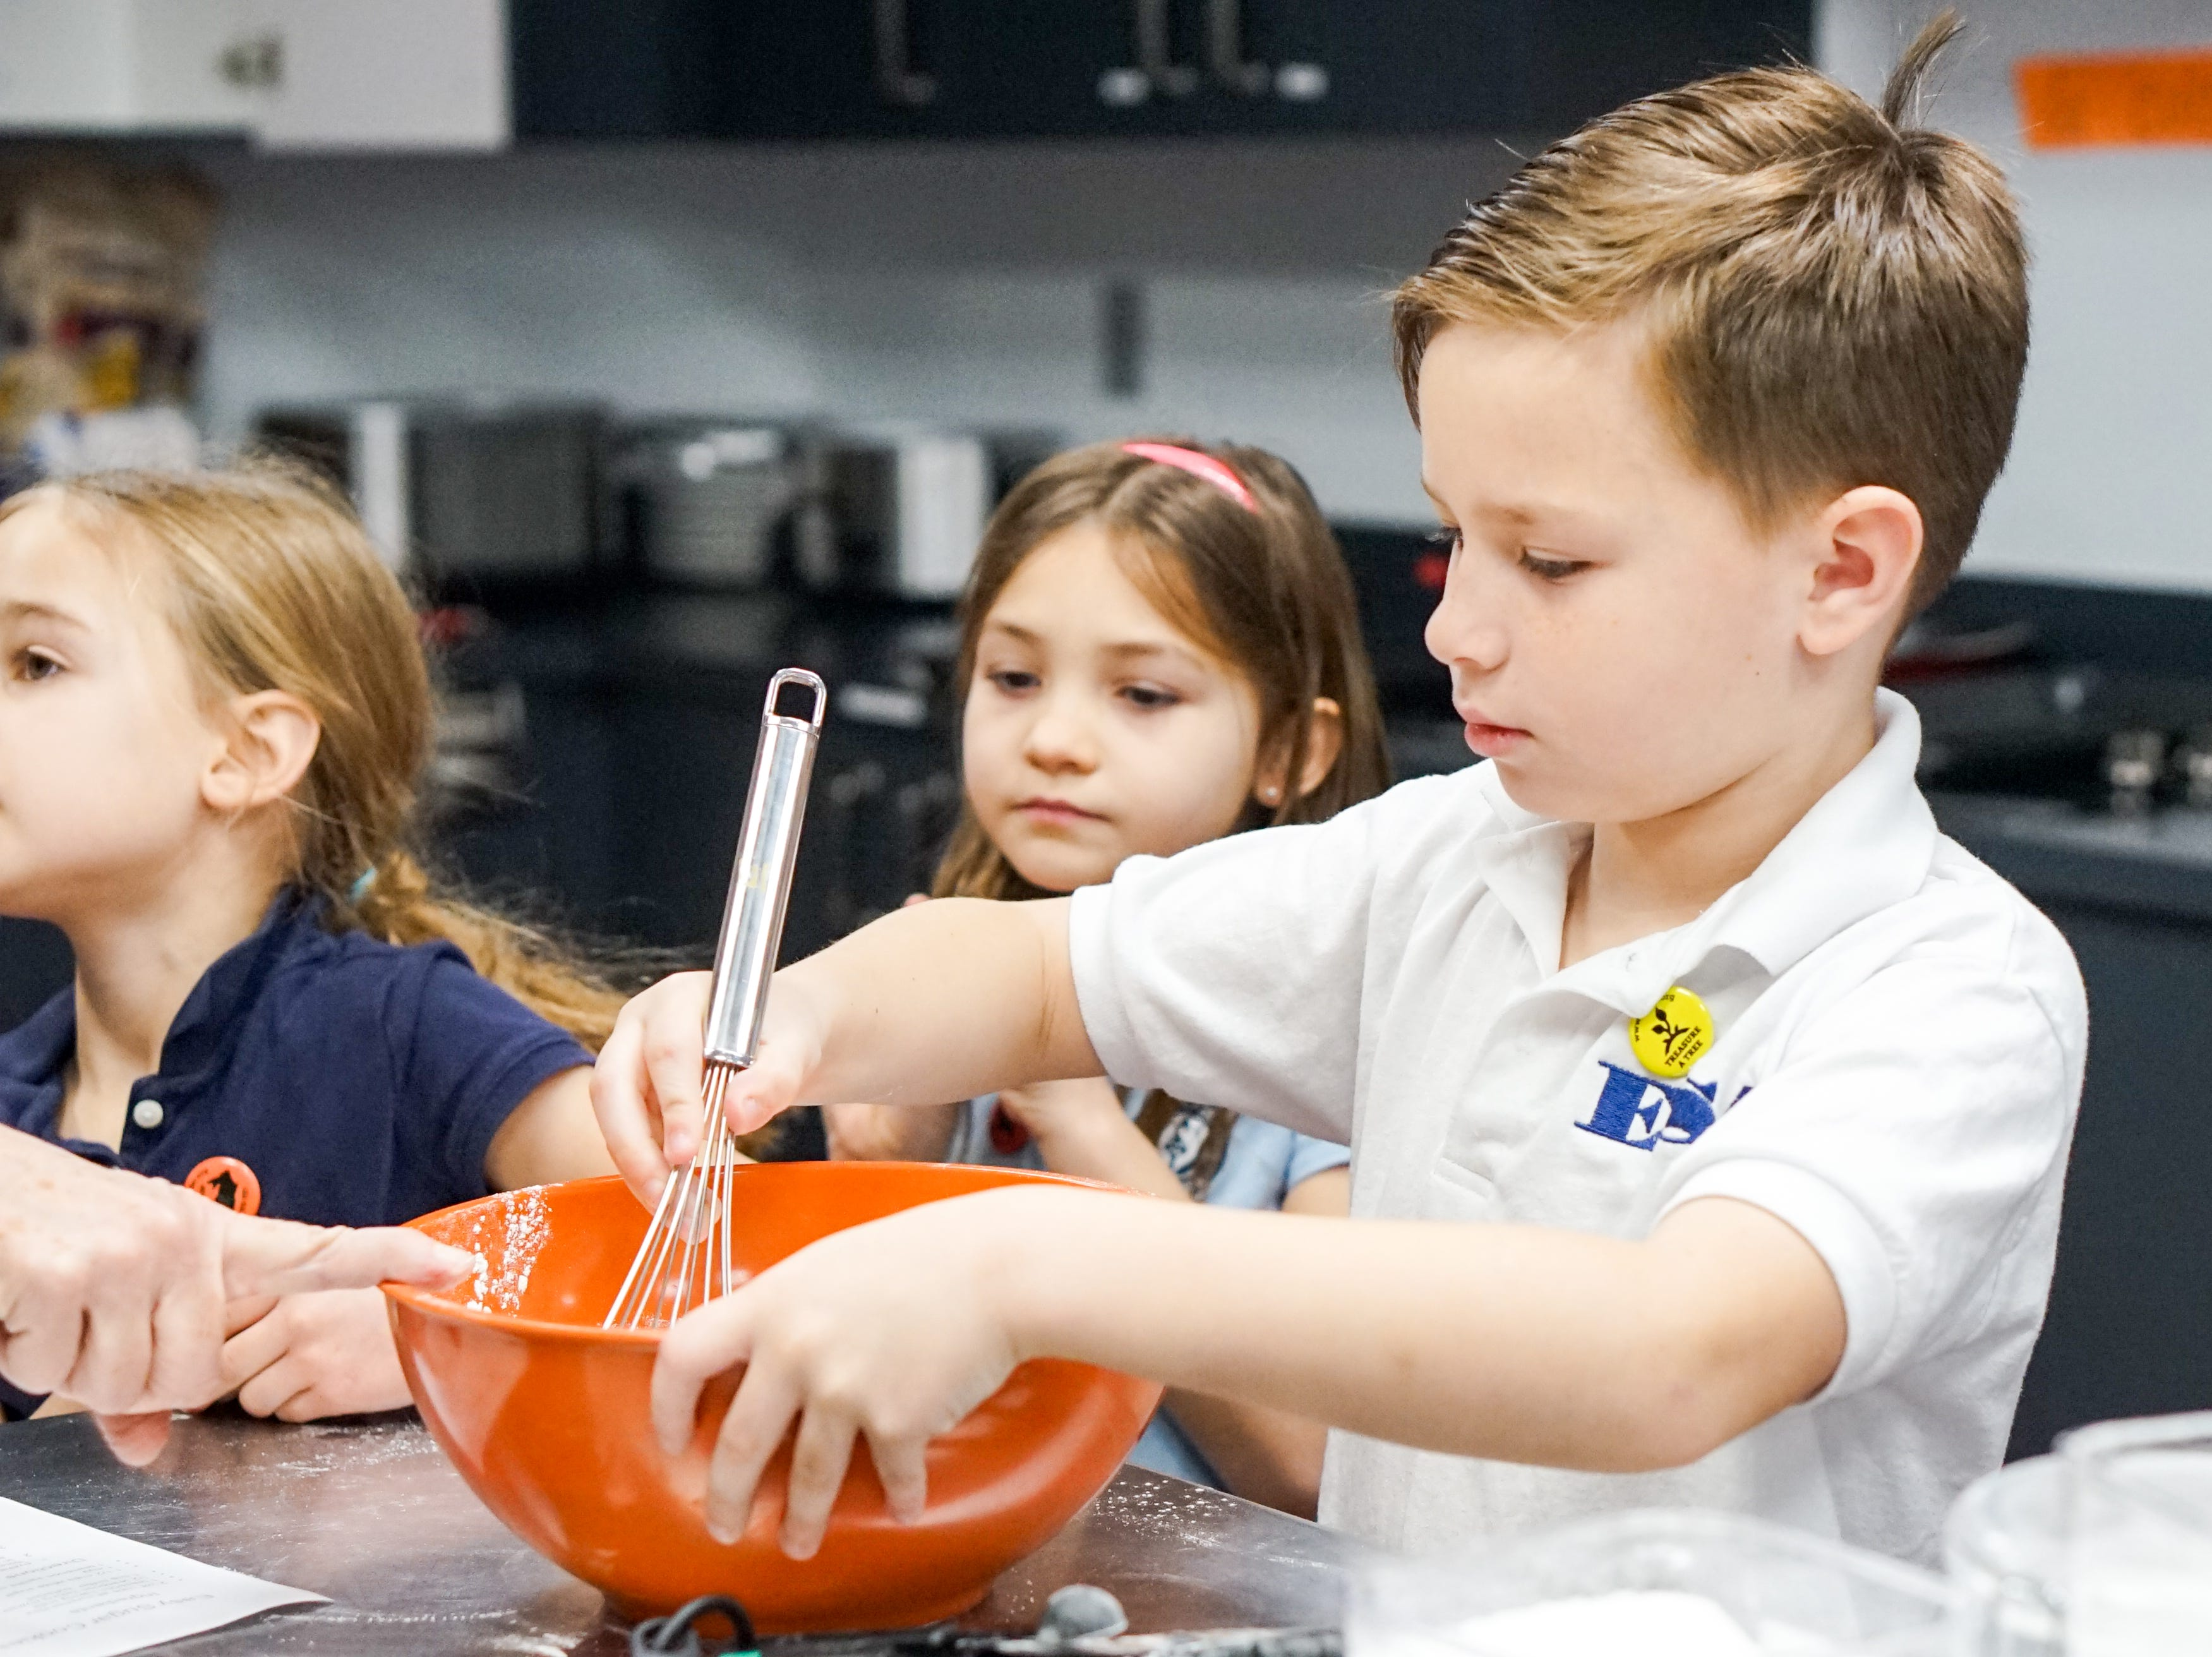 Episcopal School of Acadiana  students bake 1,000 cookies to help send a girl to school in a developing country.